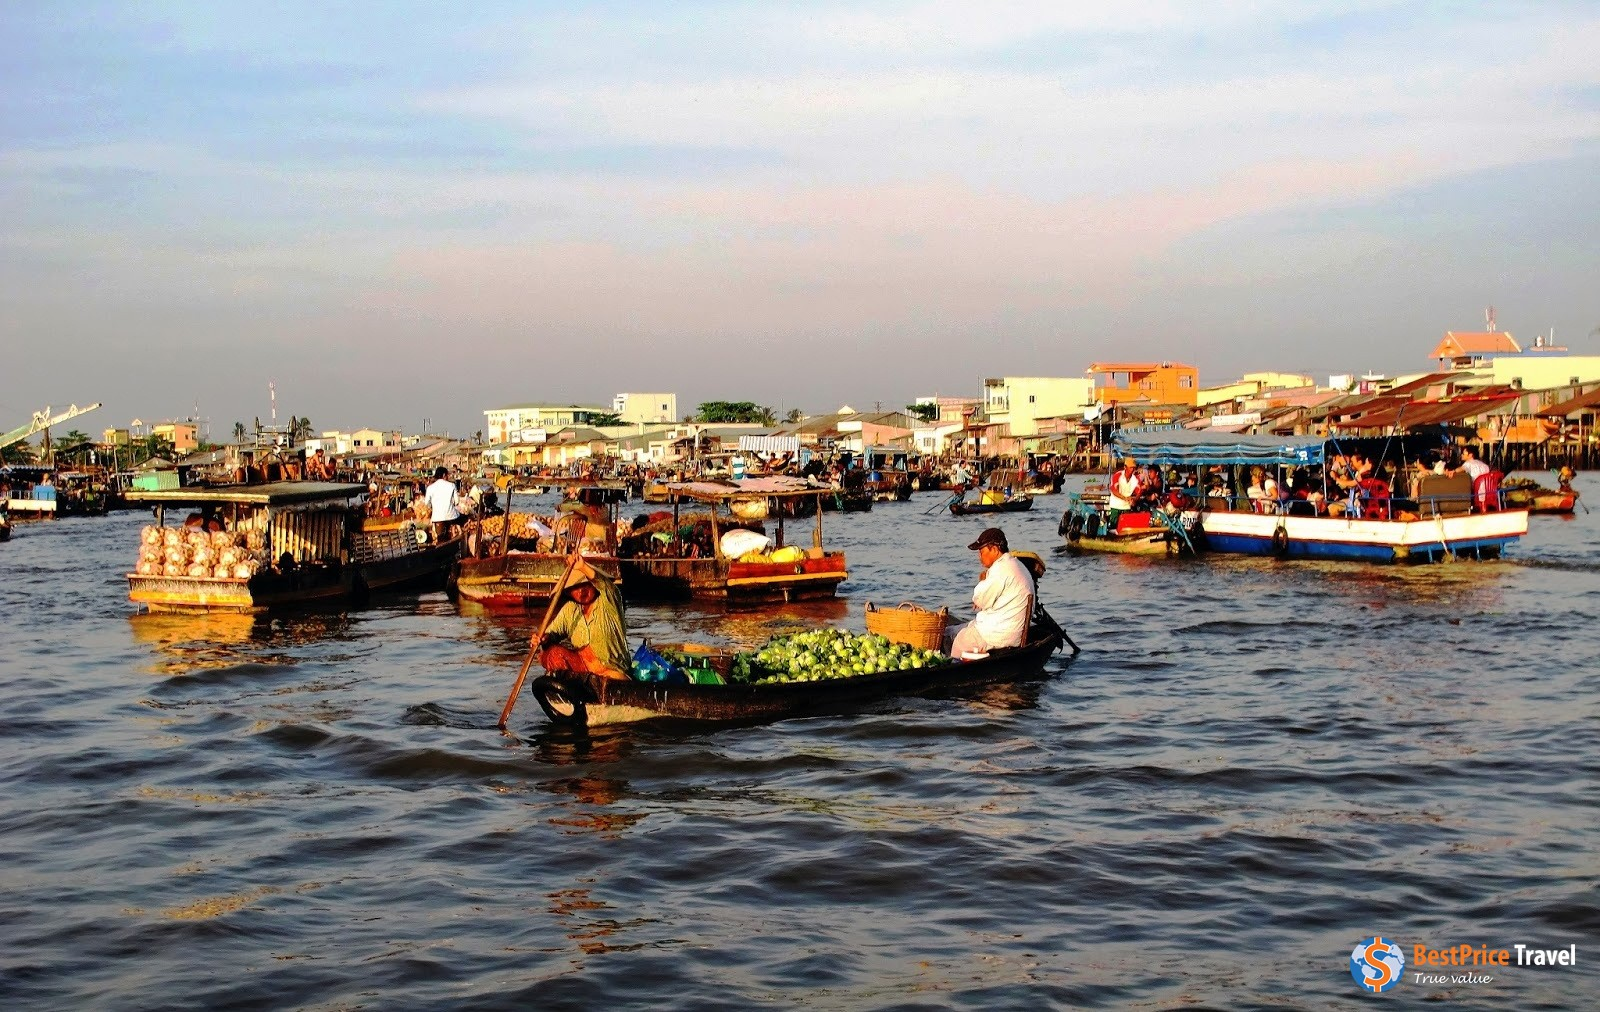 Trading on water - Vietnam Boat Trip